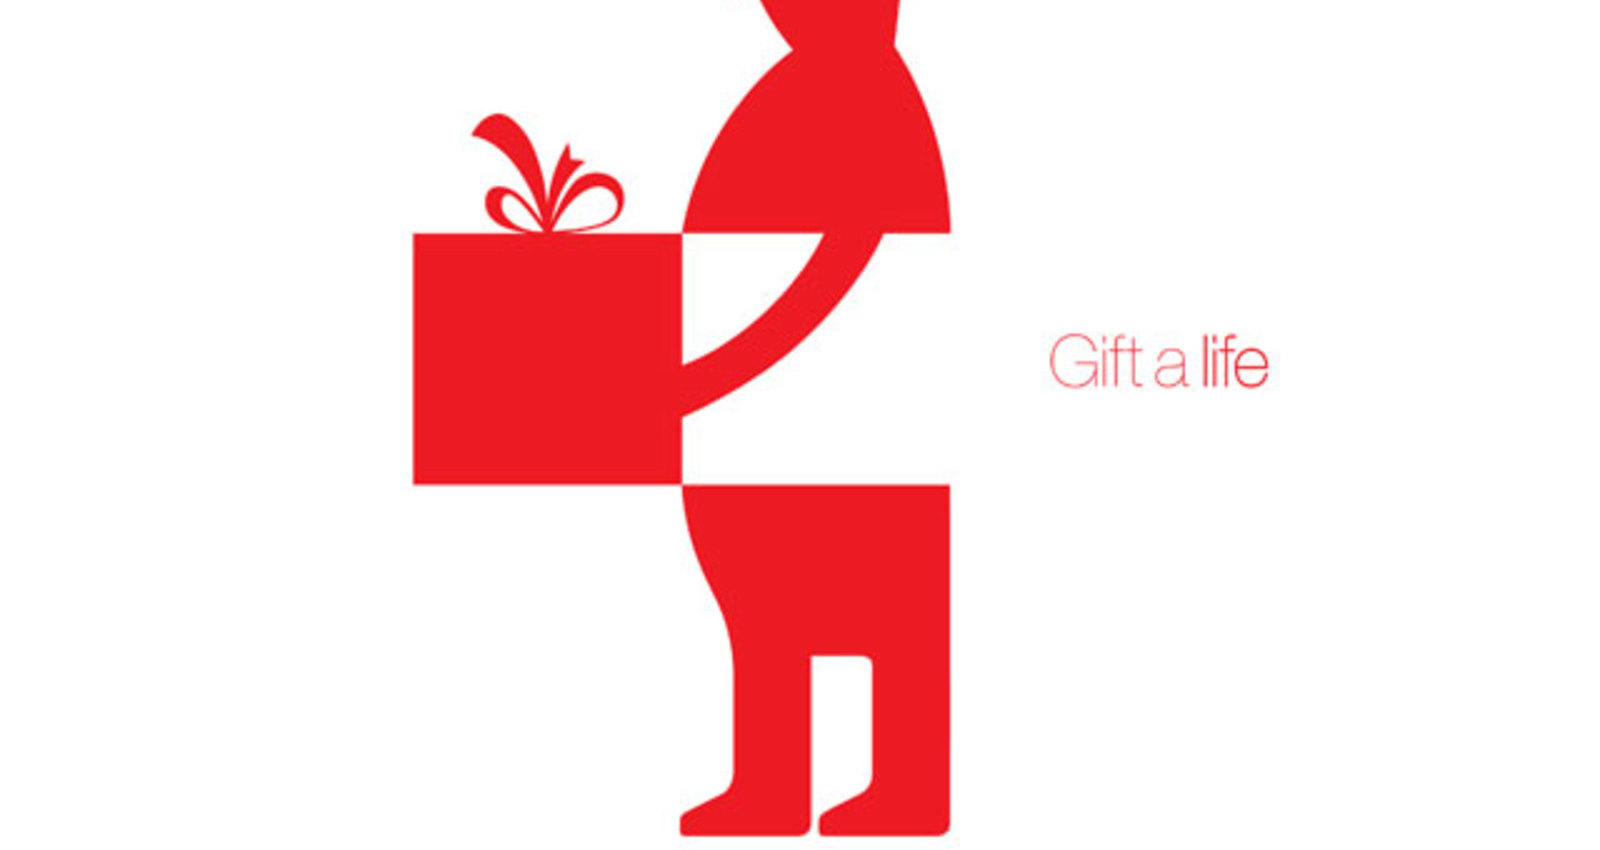 GIFT A LIFE